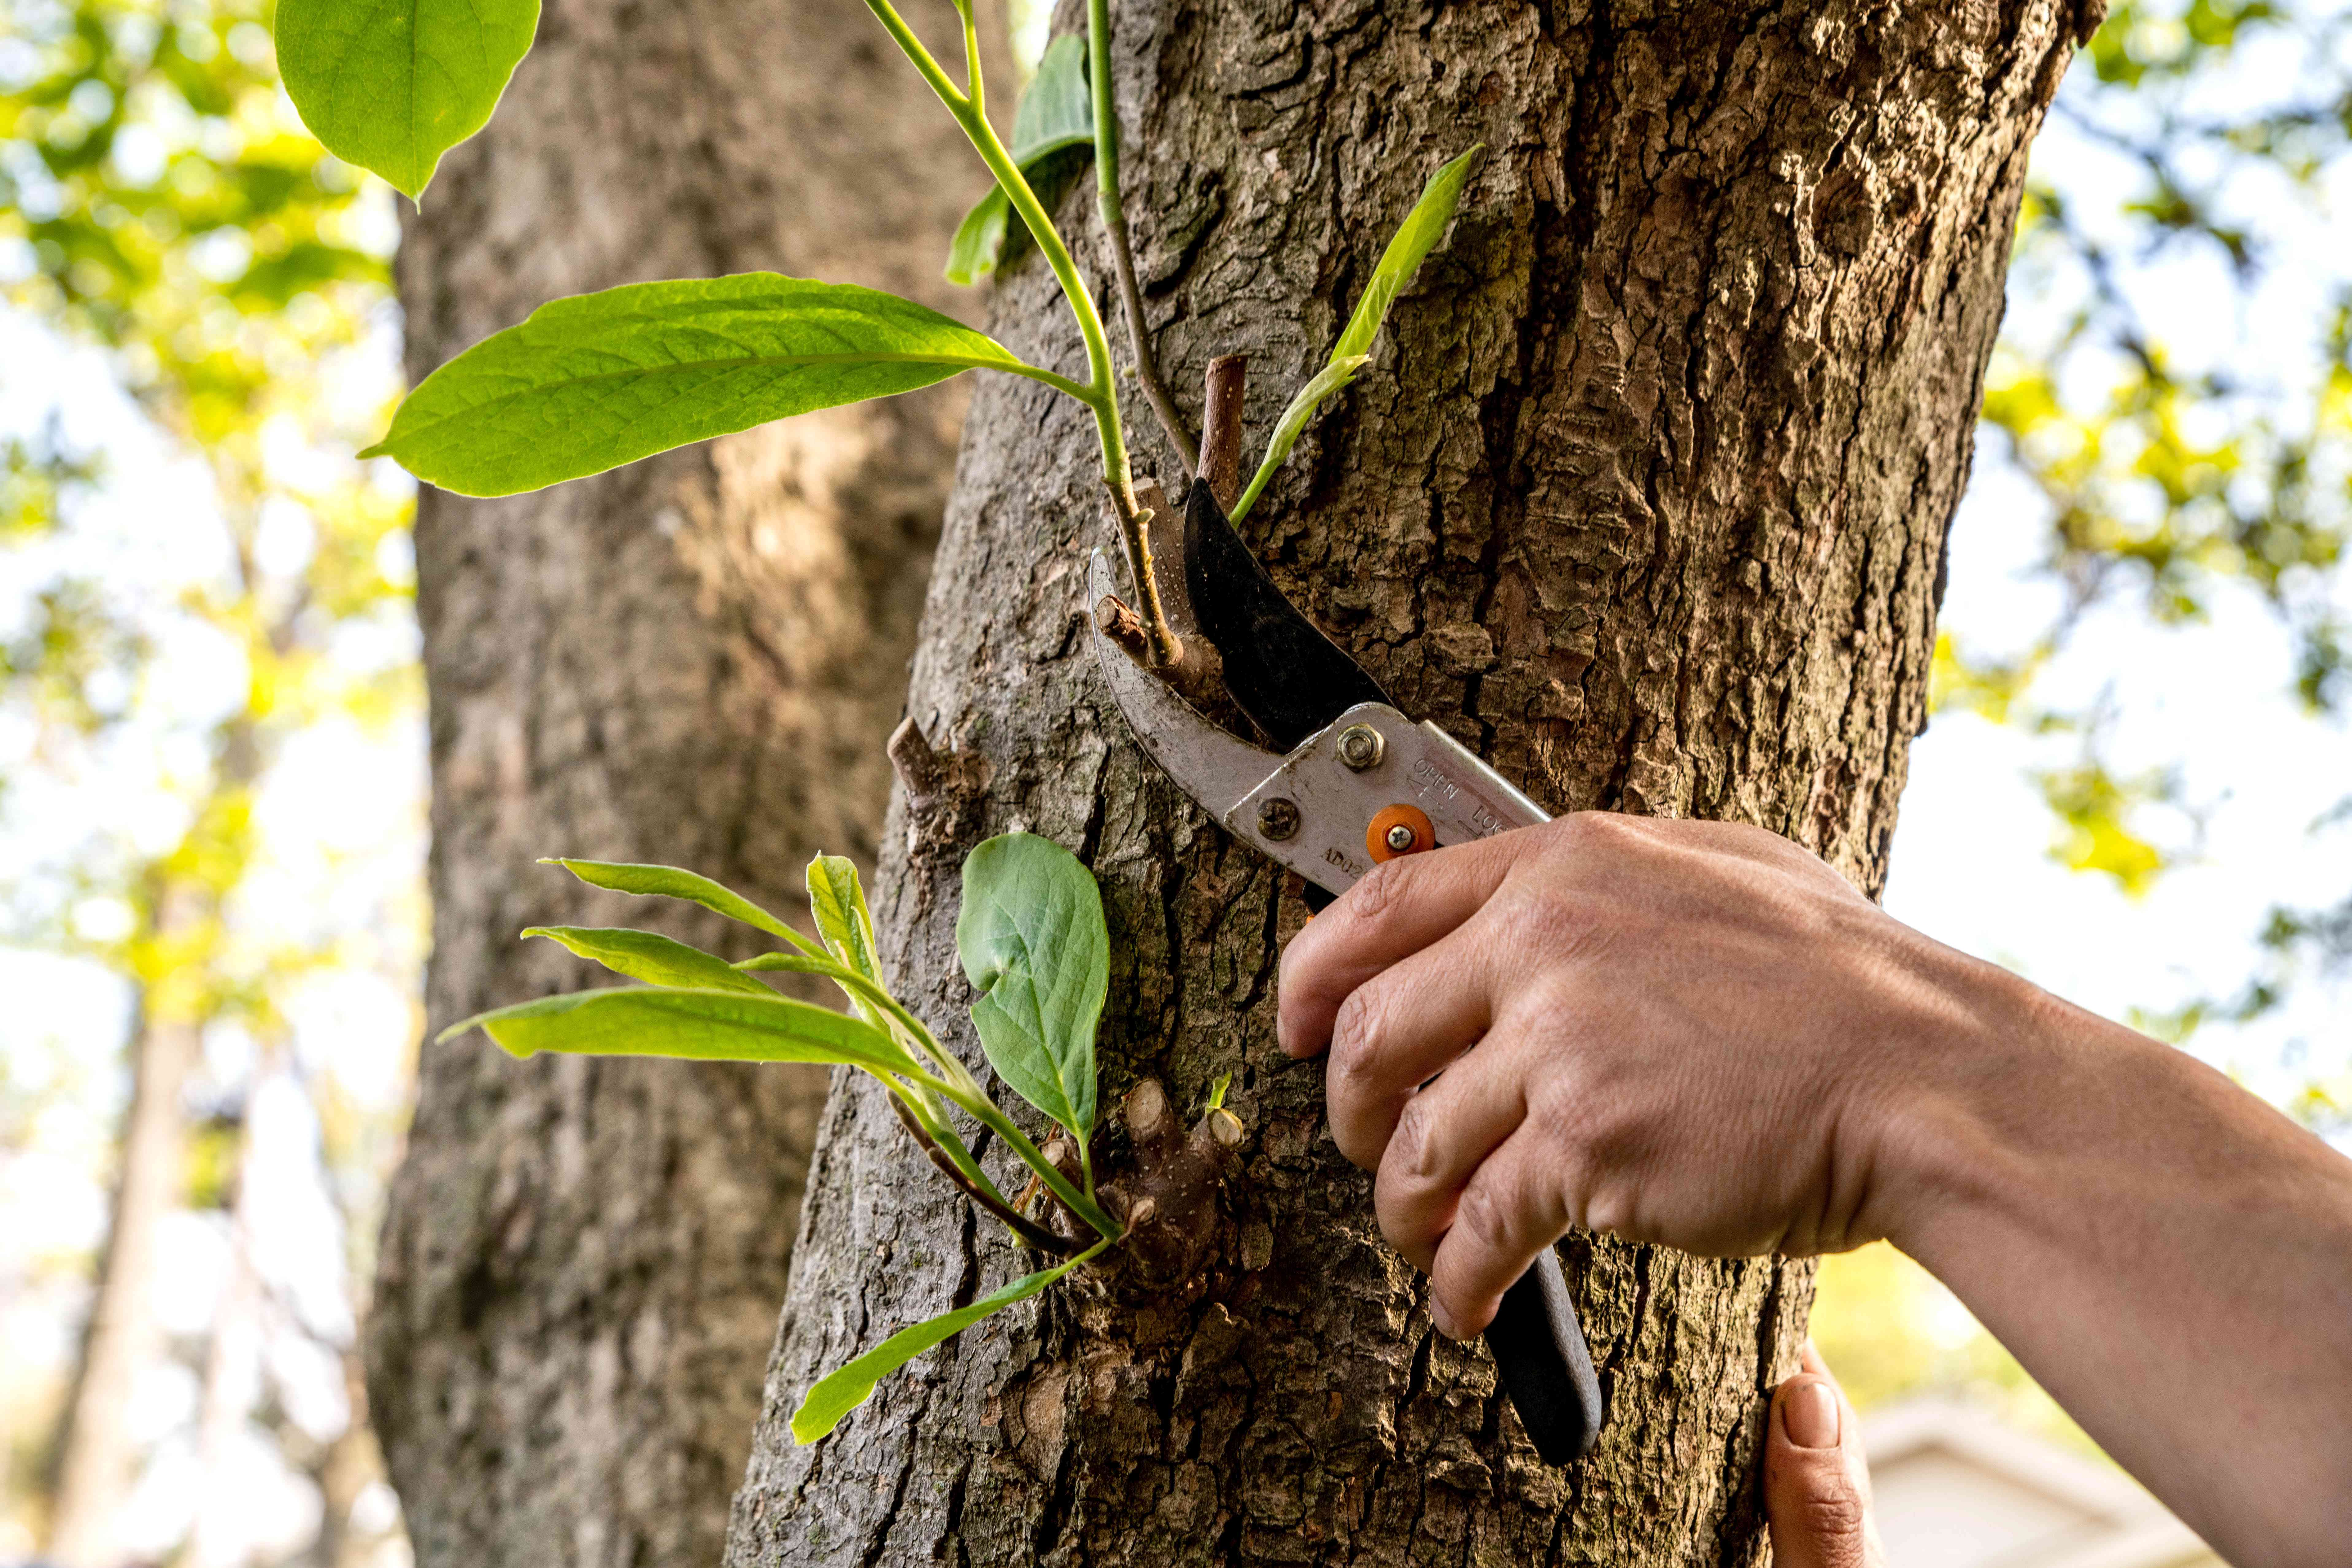 Magnolia tree trunk with small branches being pruned by hand-held shears